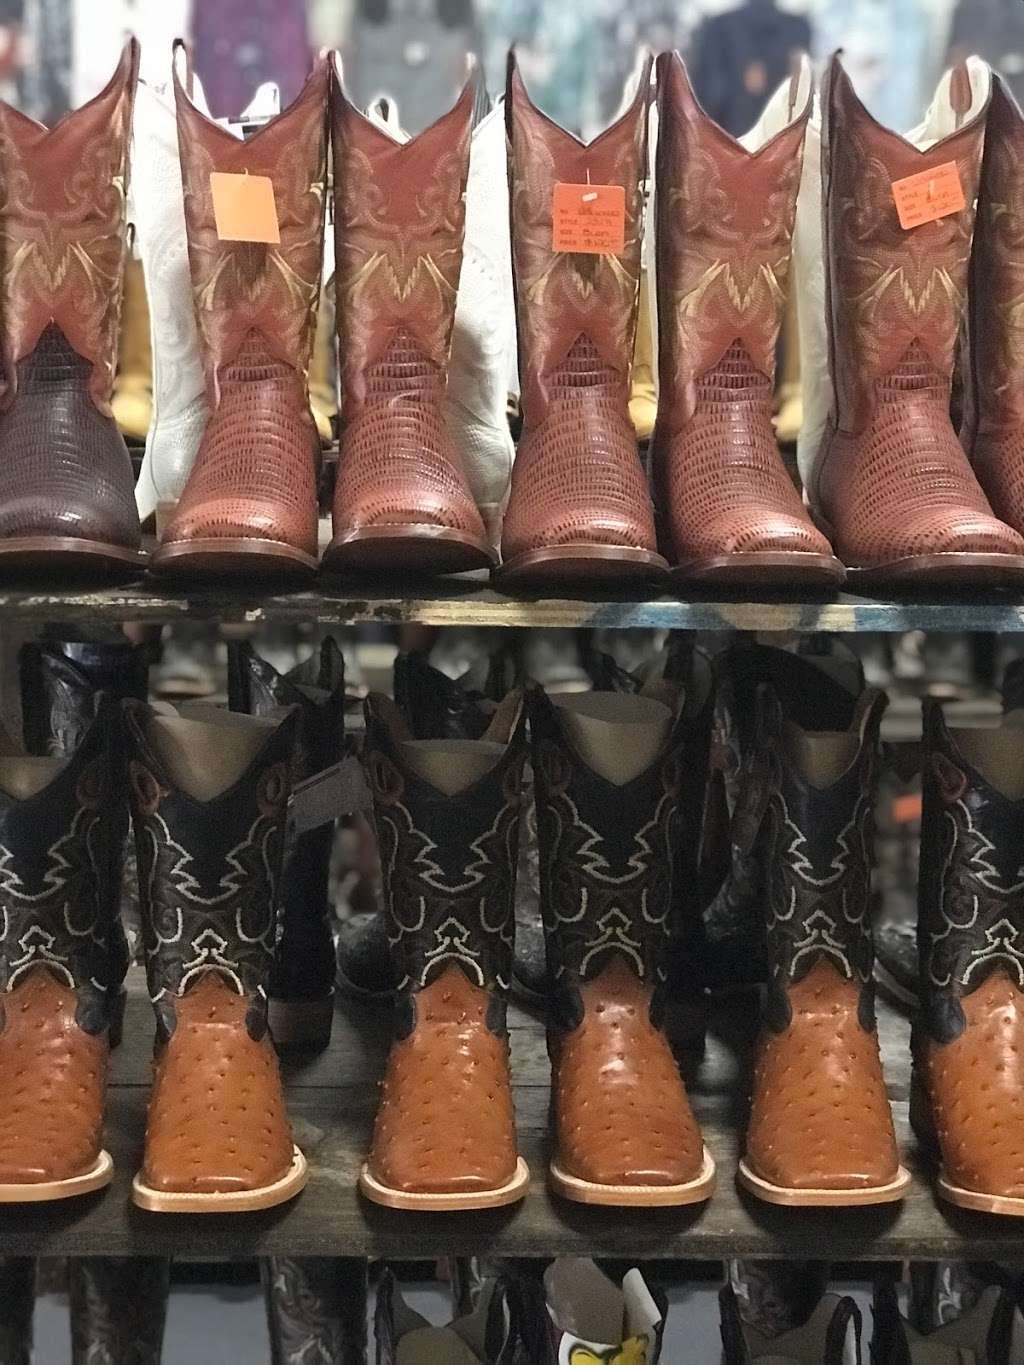 El Corral Western Boots - clothing store  | Photo 5 of 10 | Address: 11117 Harry Hines Blvd Suite 120, Dallas, TX 75229, USA | Phone: (469) 687-0082